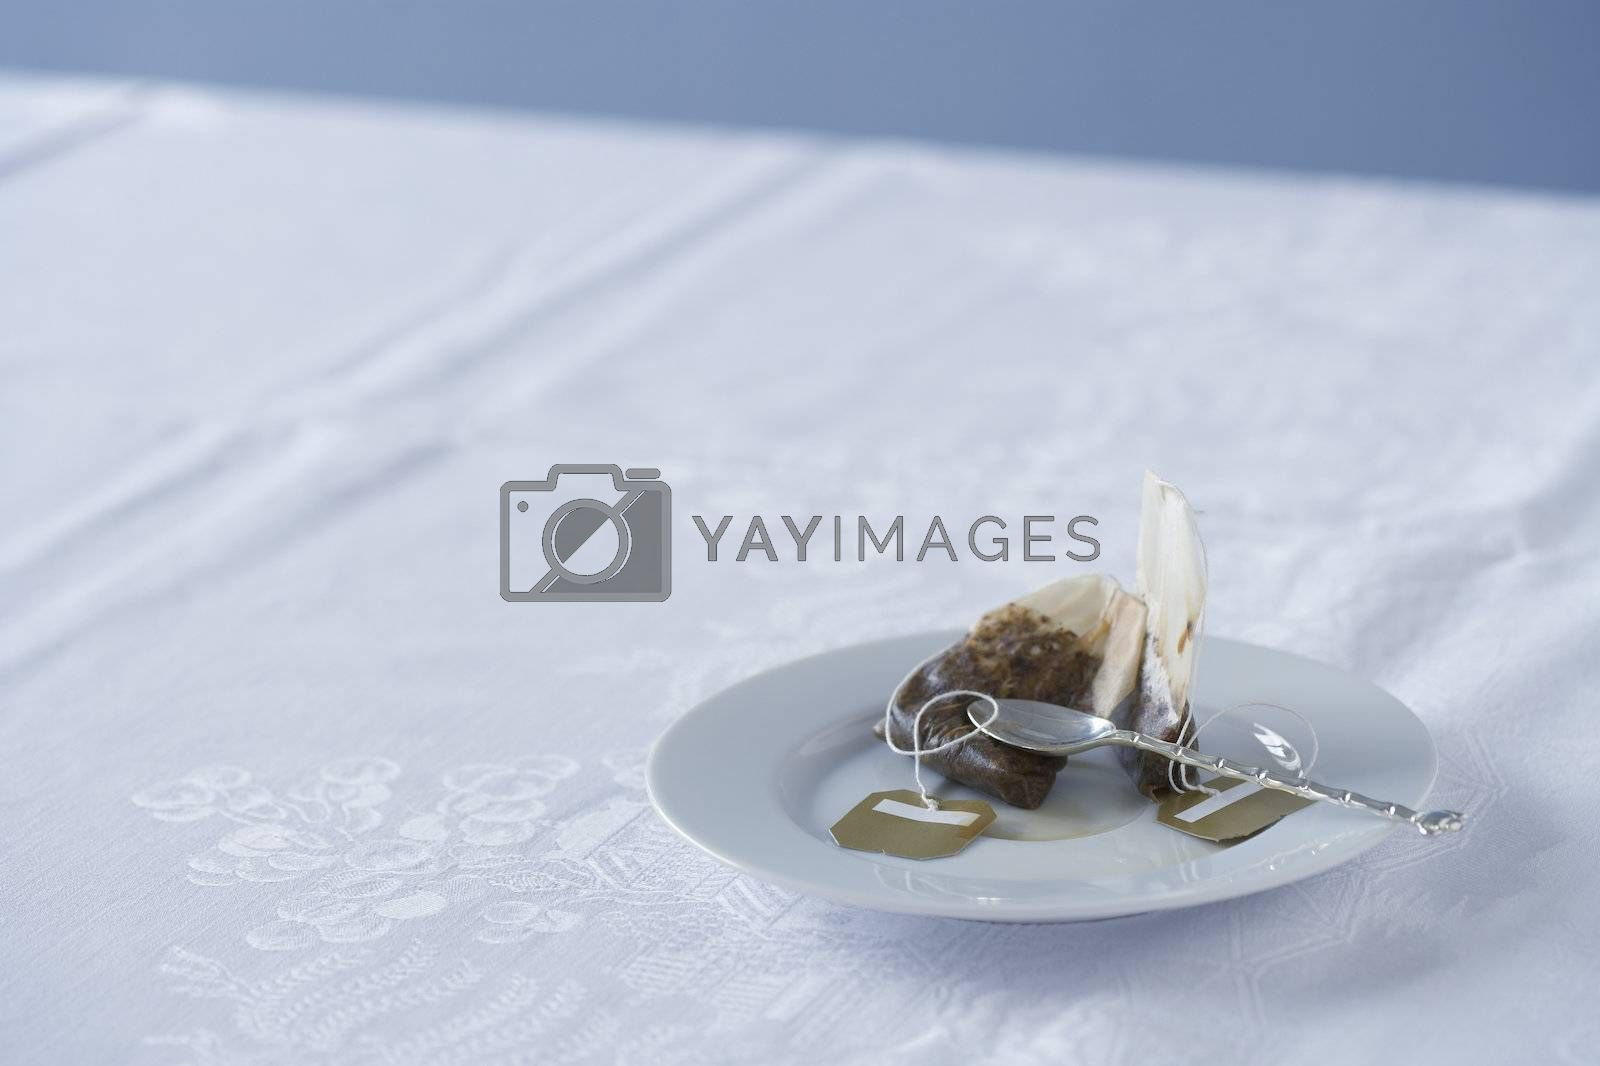 Used tea bag on saucer on table by moodboard